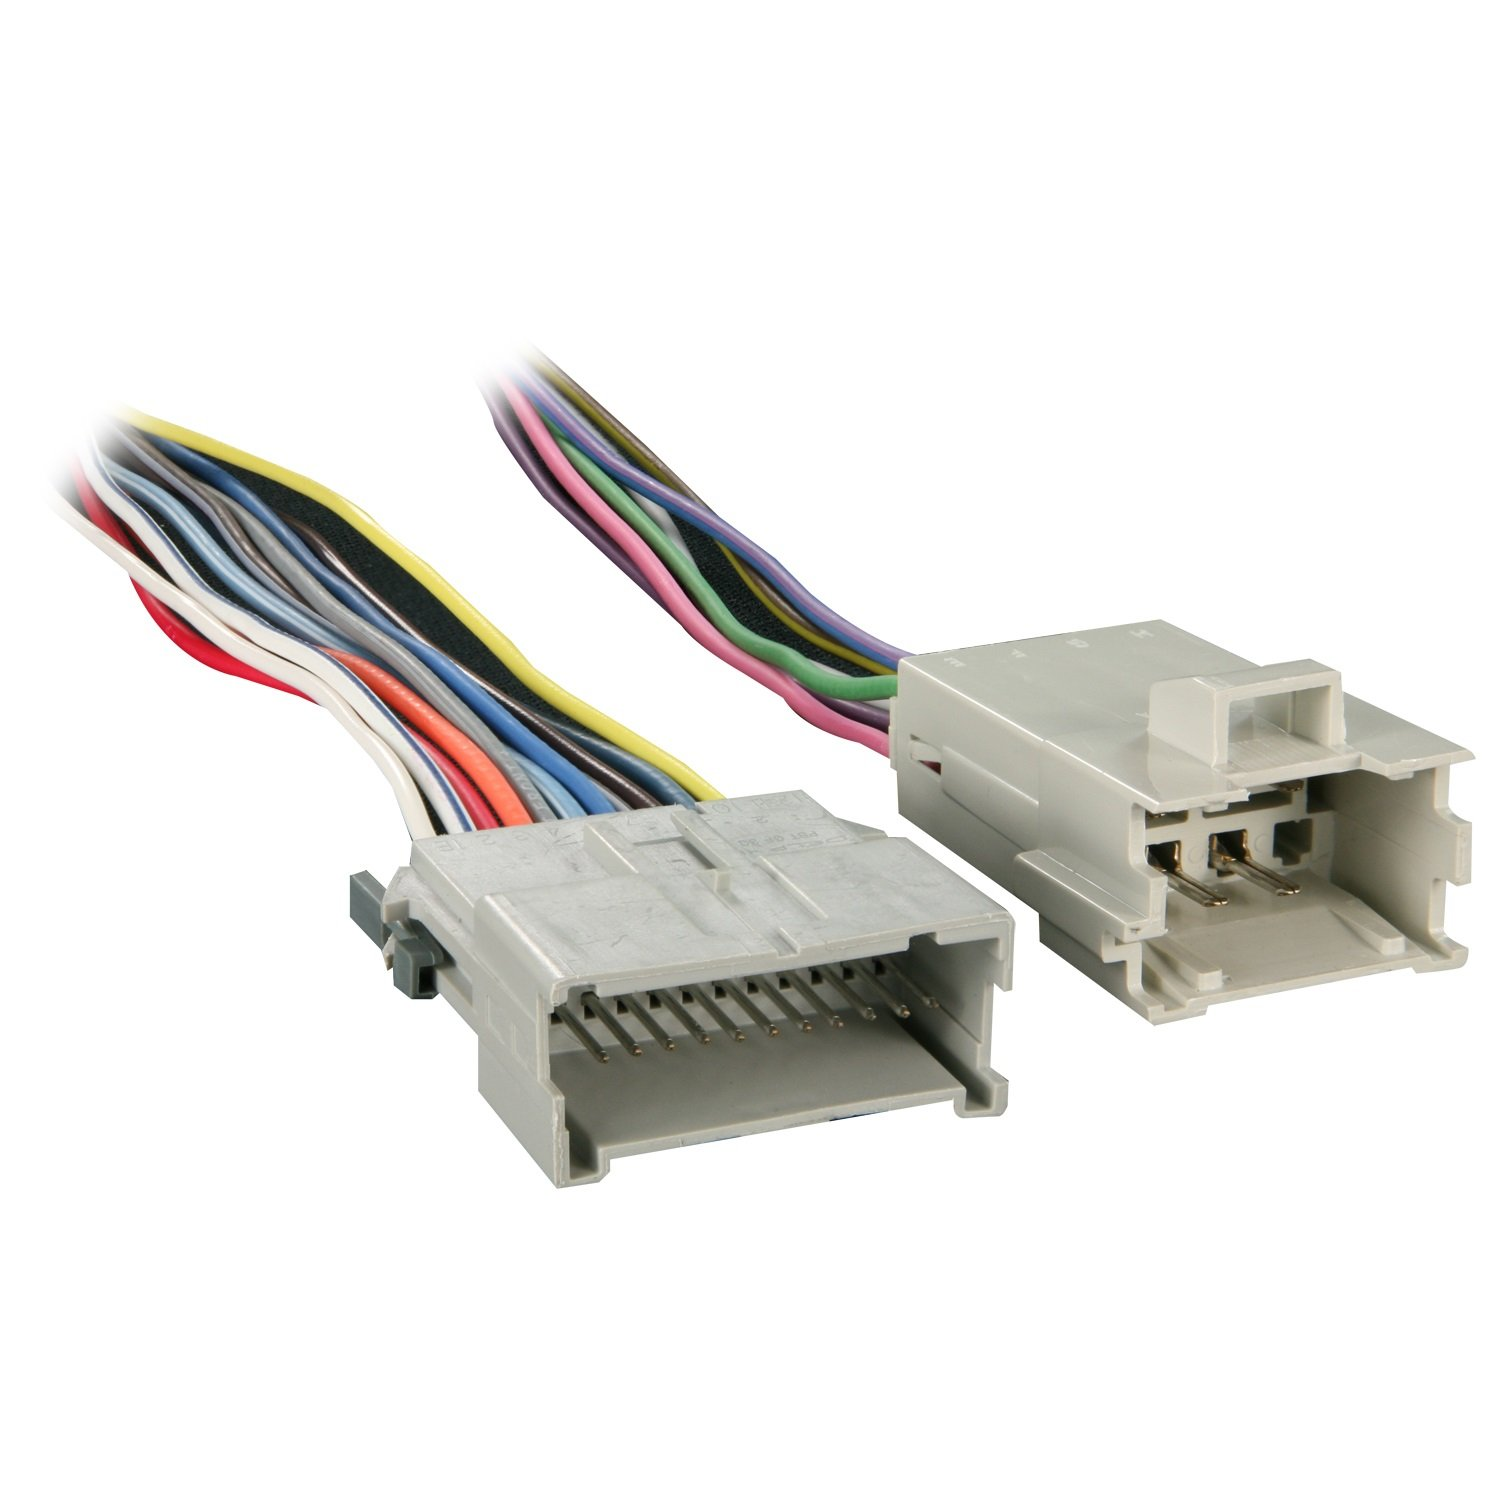 71gEc%2BOPJ8L._SL1500_ amazon com metra 70 2054 factory amplifier bypass harness for GM Wiring Color Codes at crackthecode.co